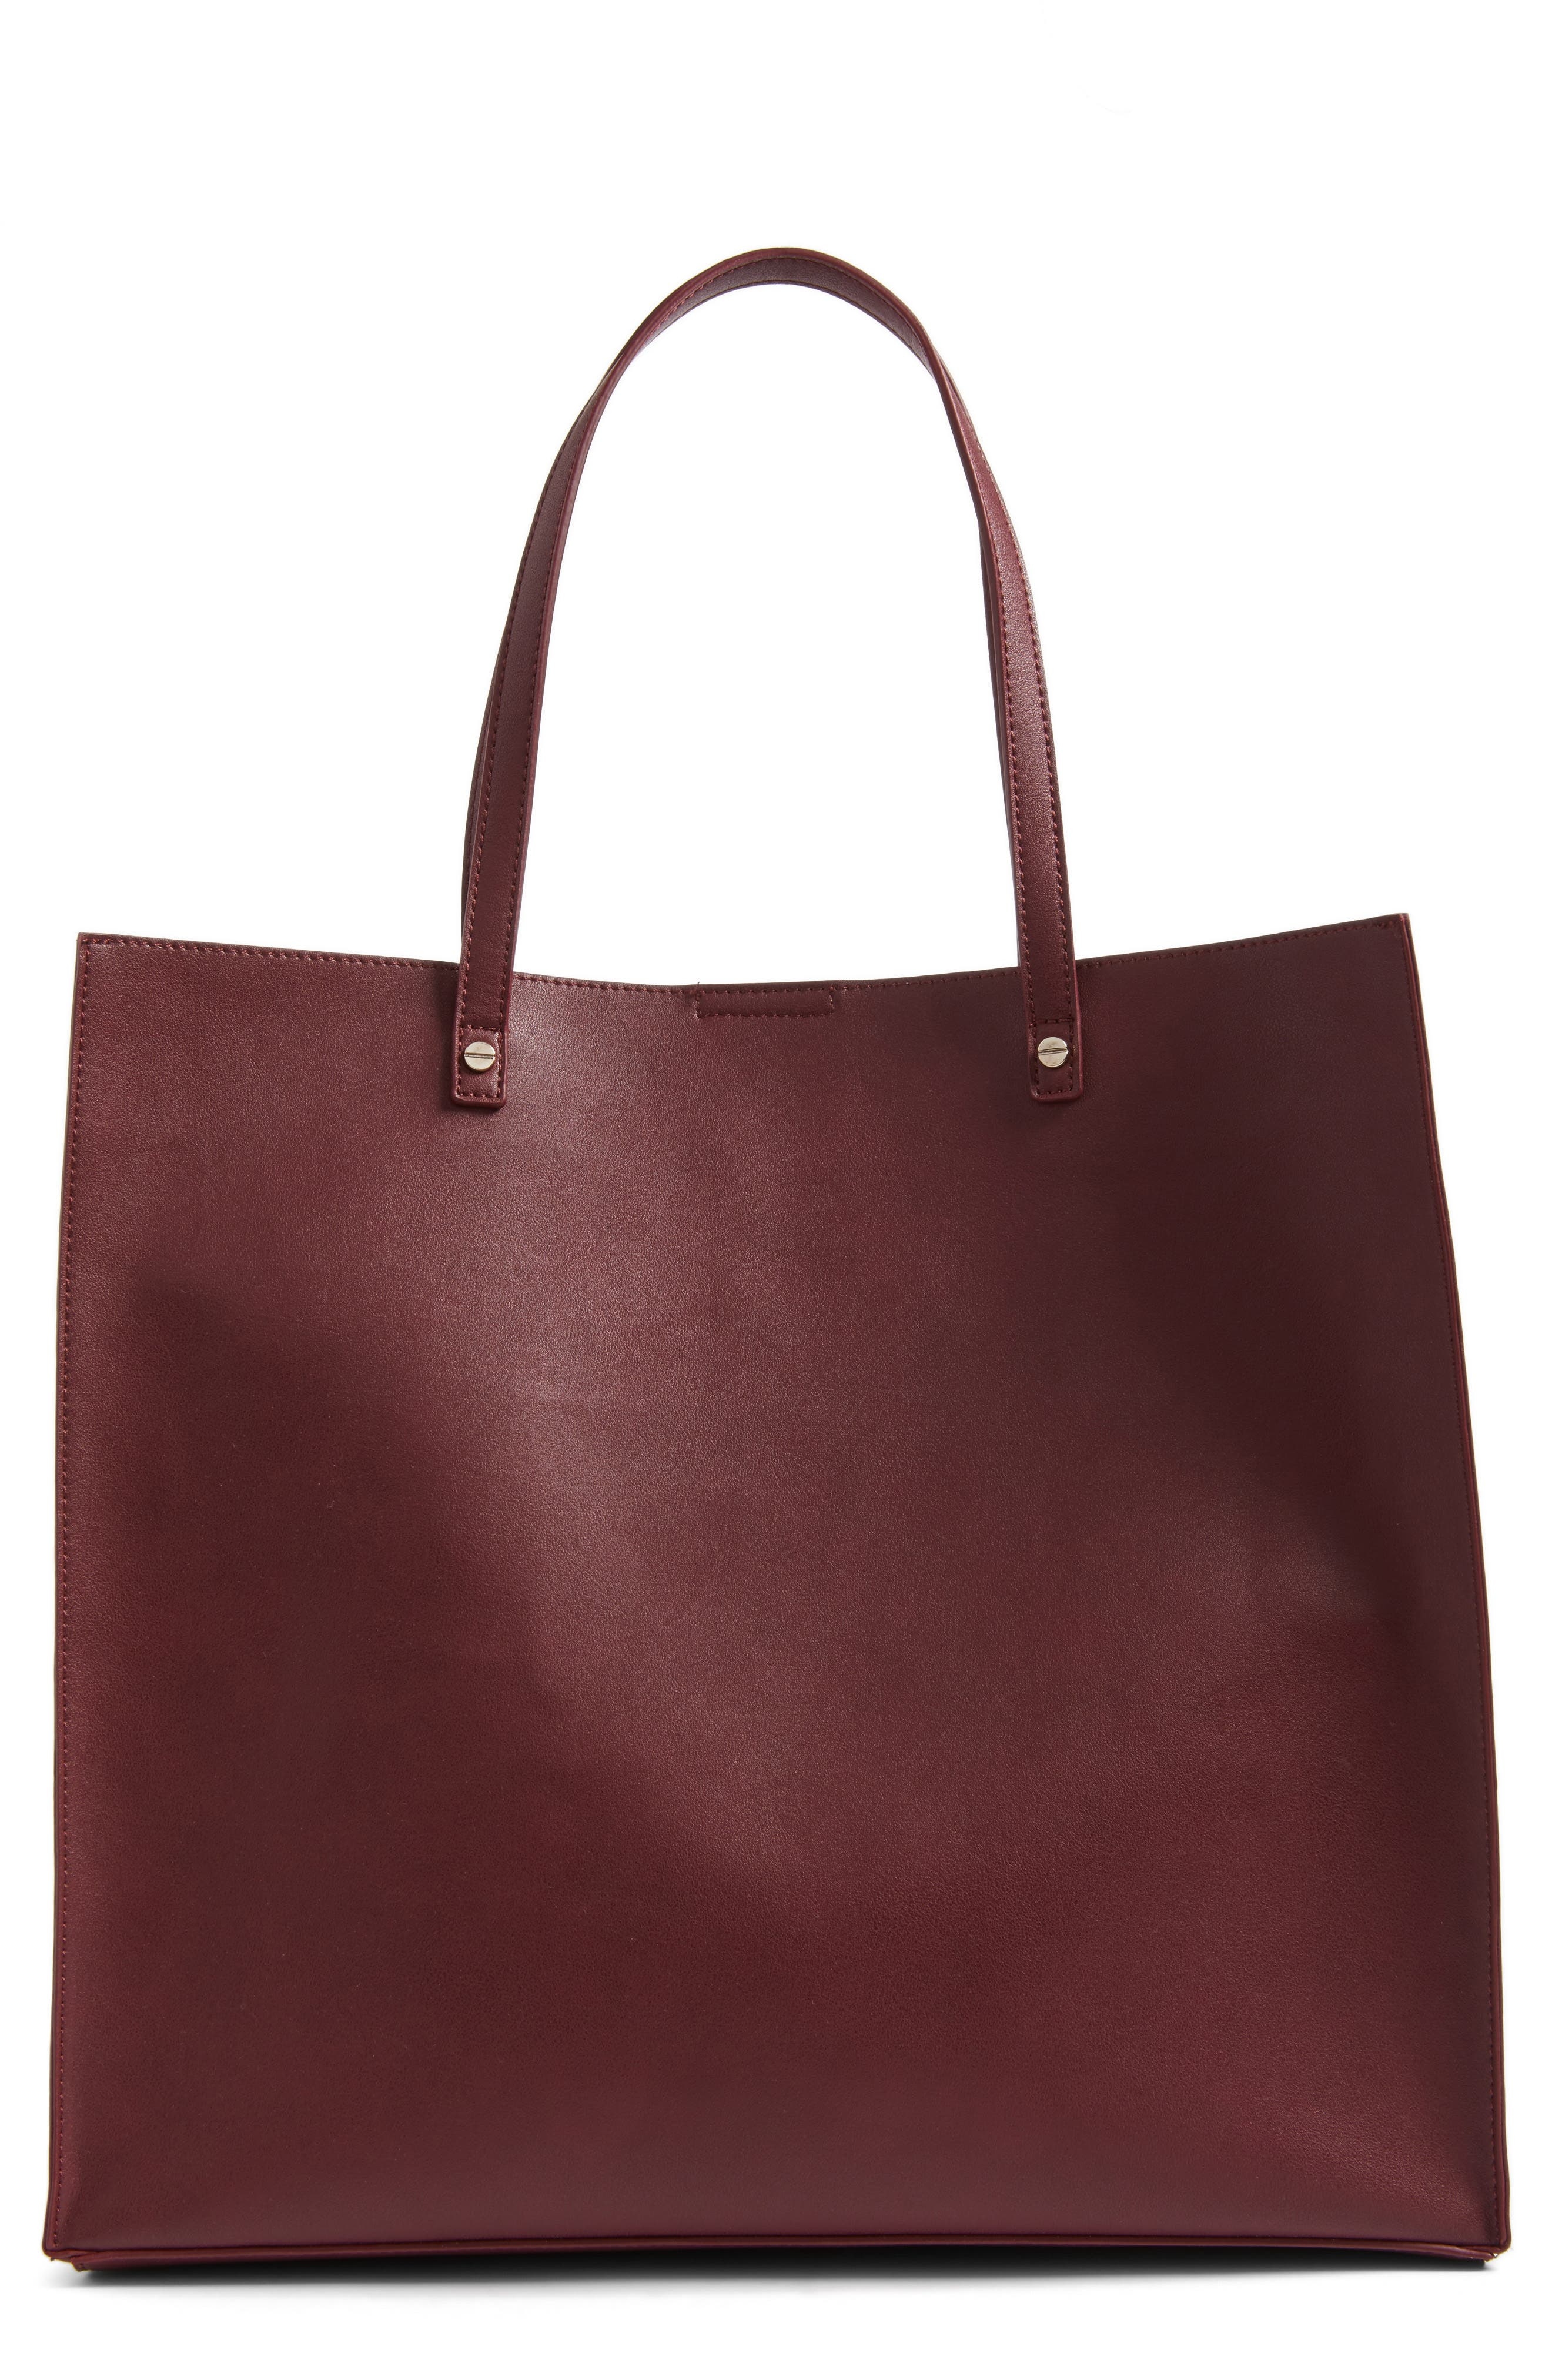 Alternate Image 1 Selected - BP. Faux Leather Tote